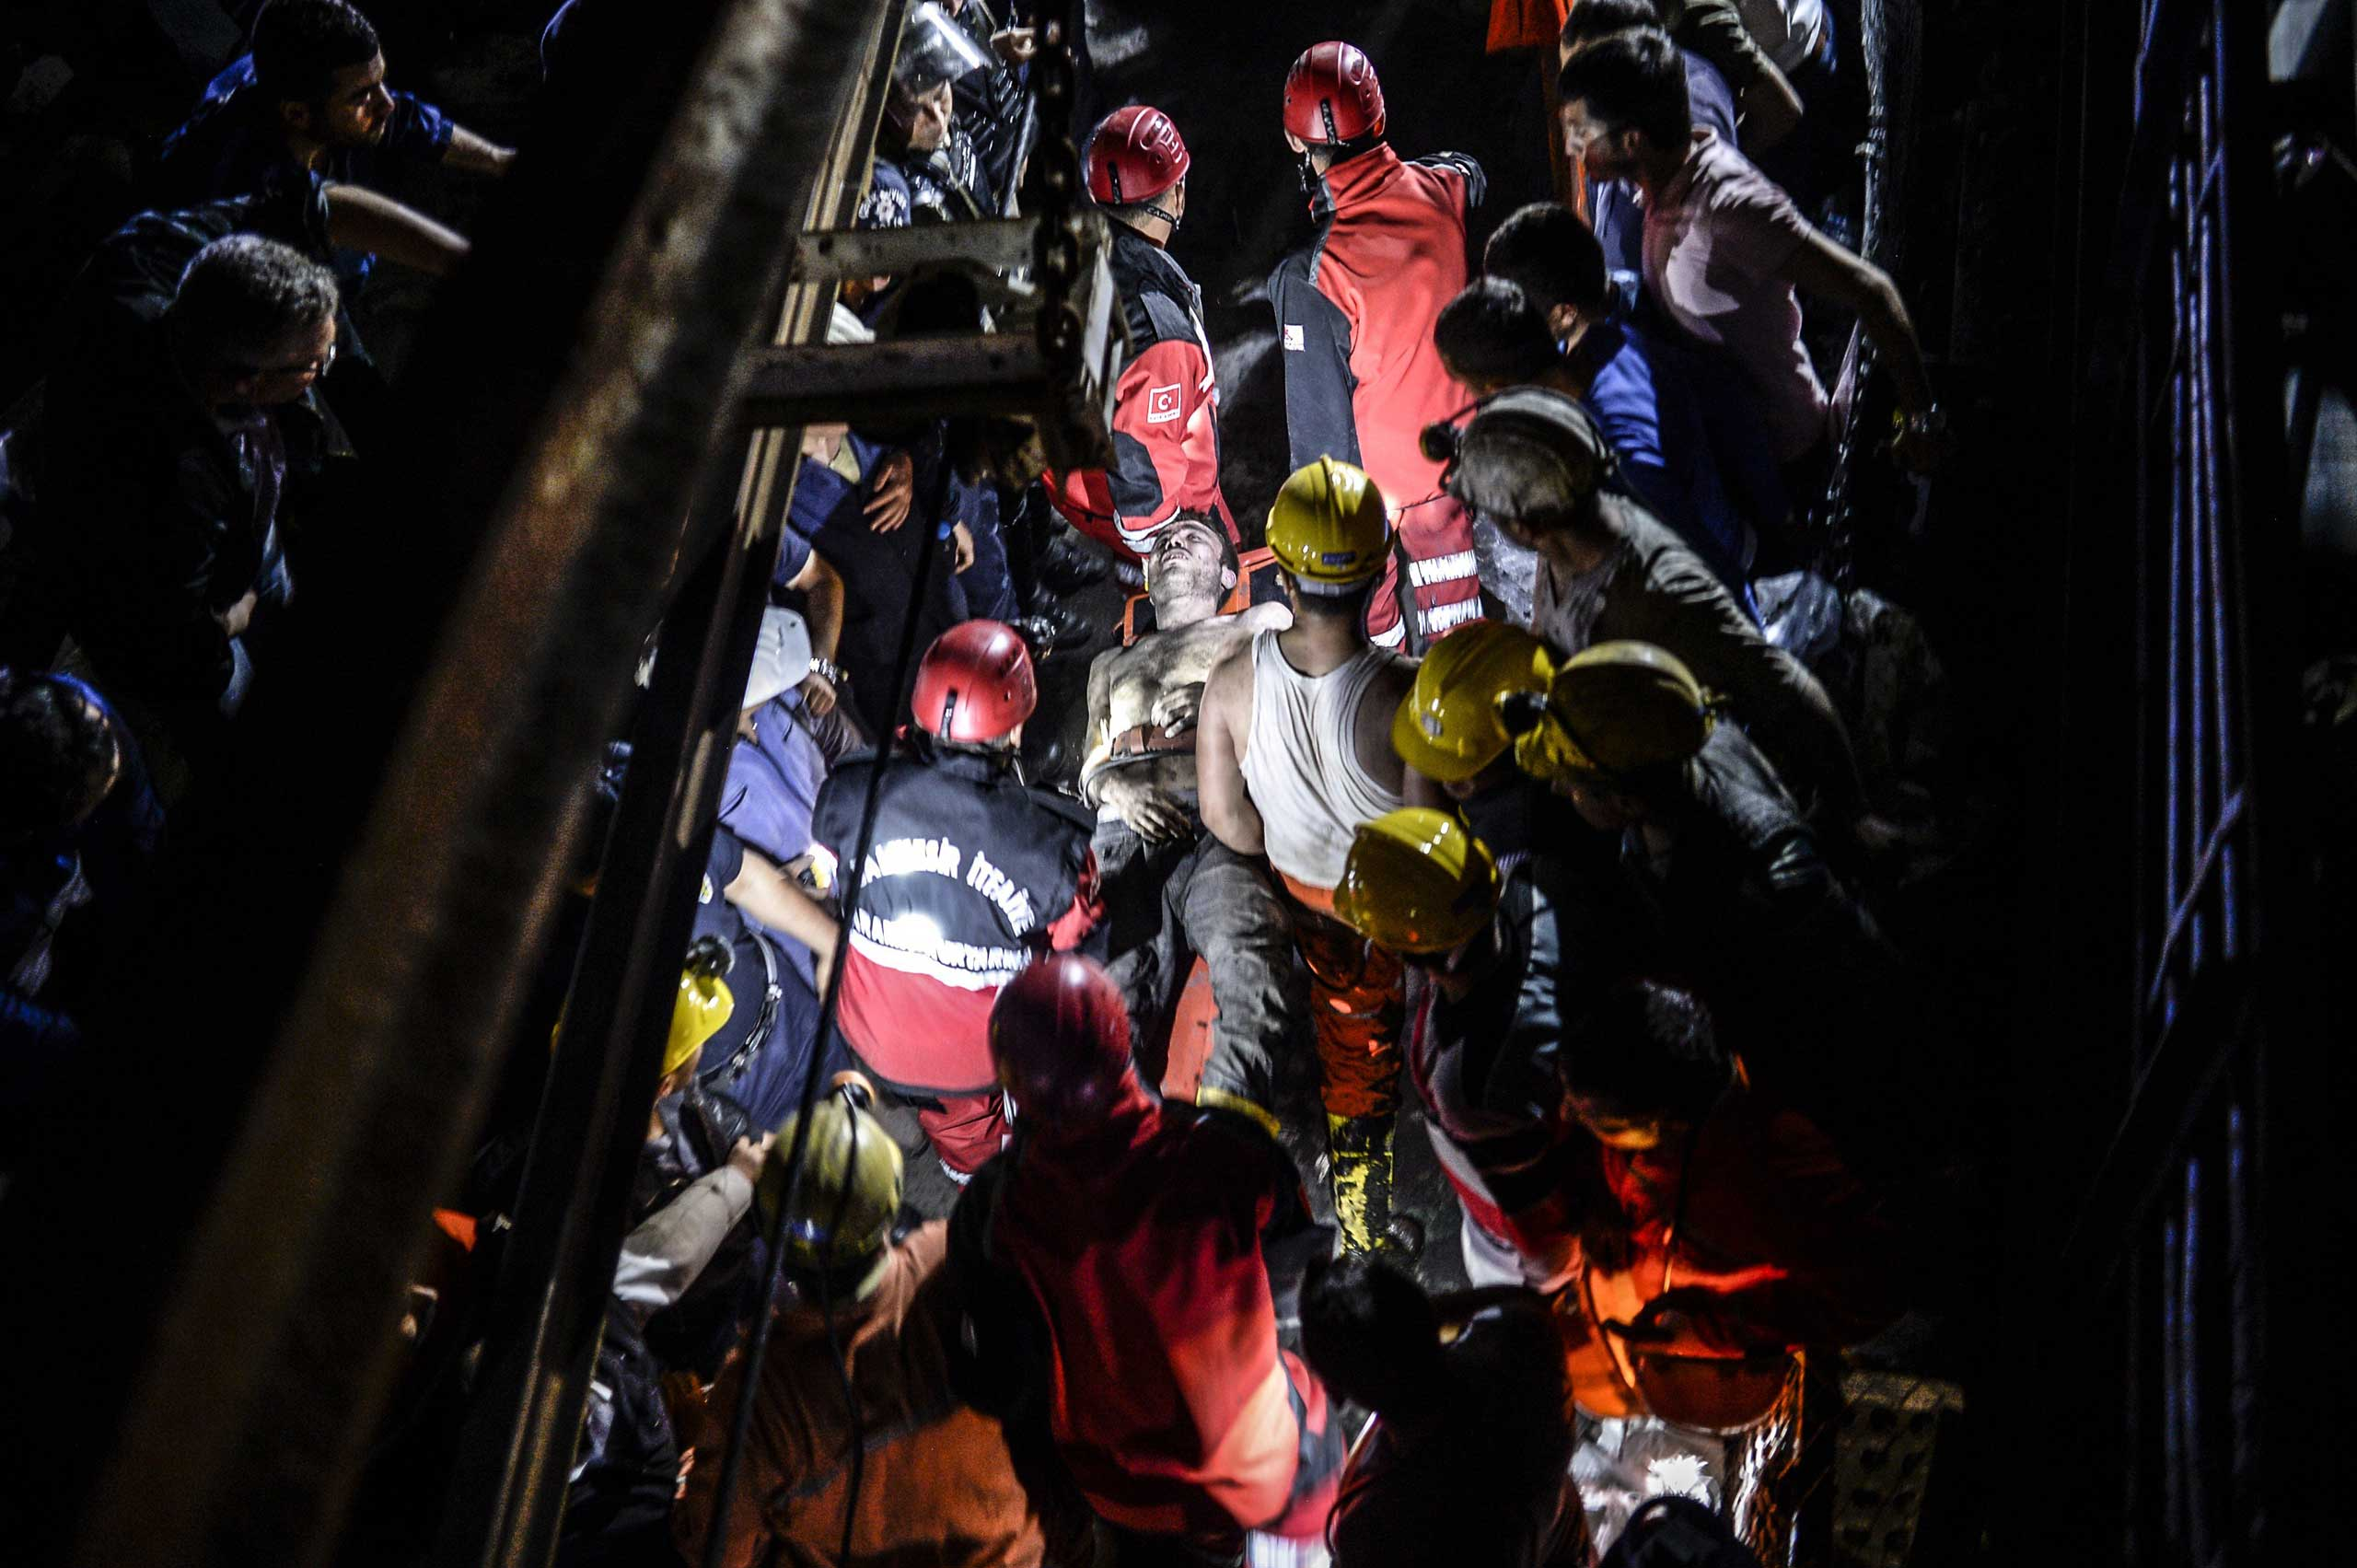 An injured miner comes out, carried by rescuers after an explosion in Manisa, Turkey, on May 13, 2014.